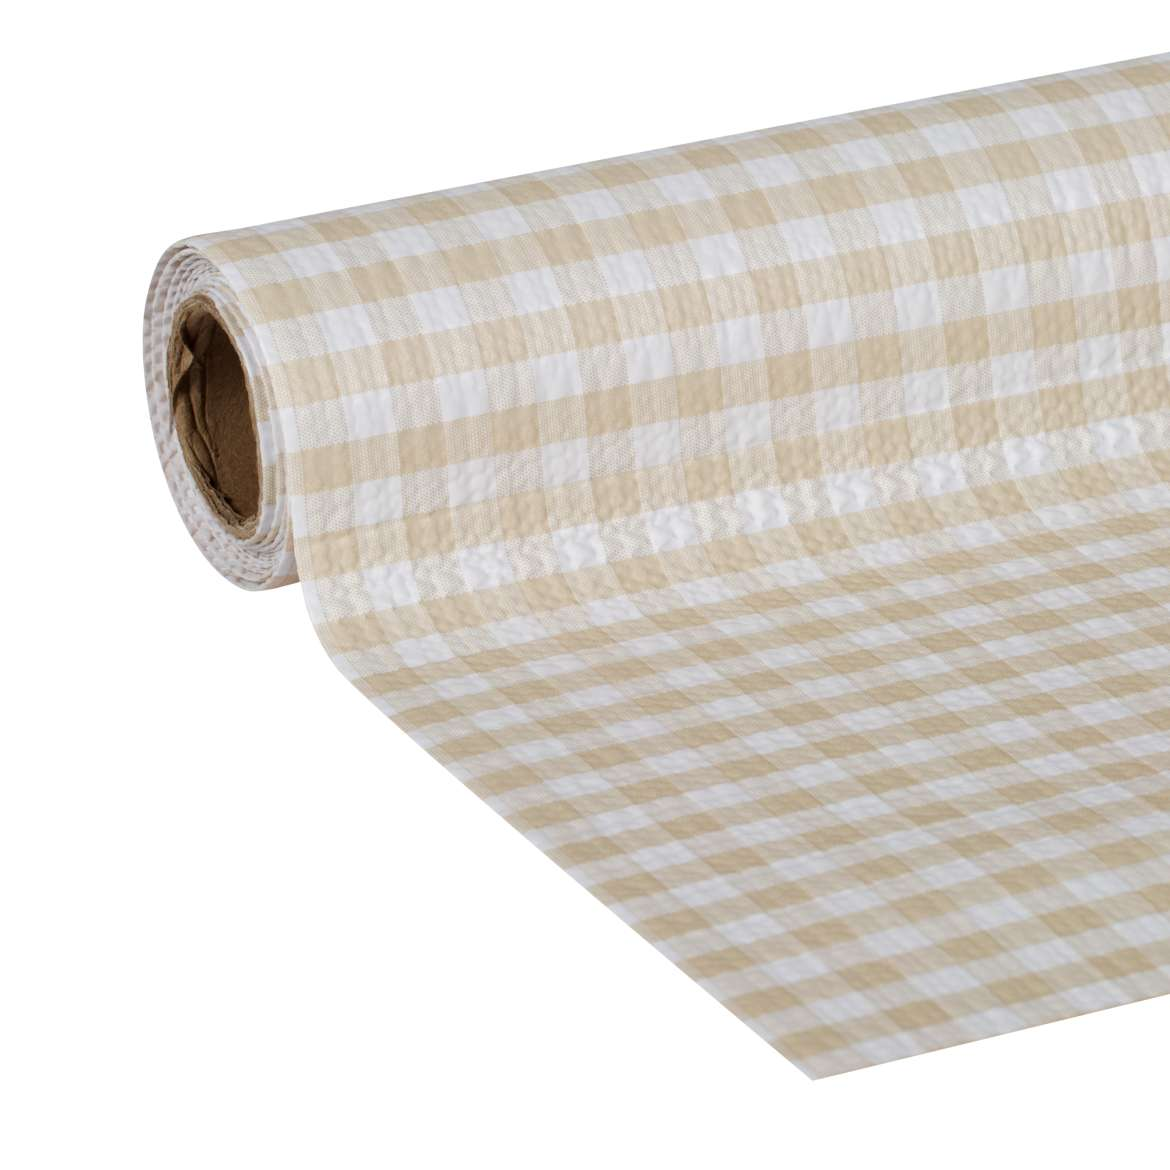 "Duck Brand, Smooth Top Easy Liner, Shelf Liner, 20""x 6', Sandstone Gingham"